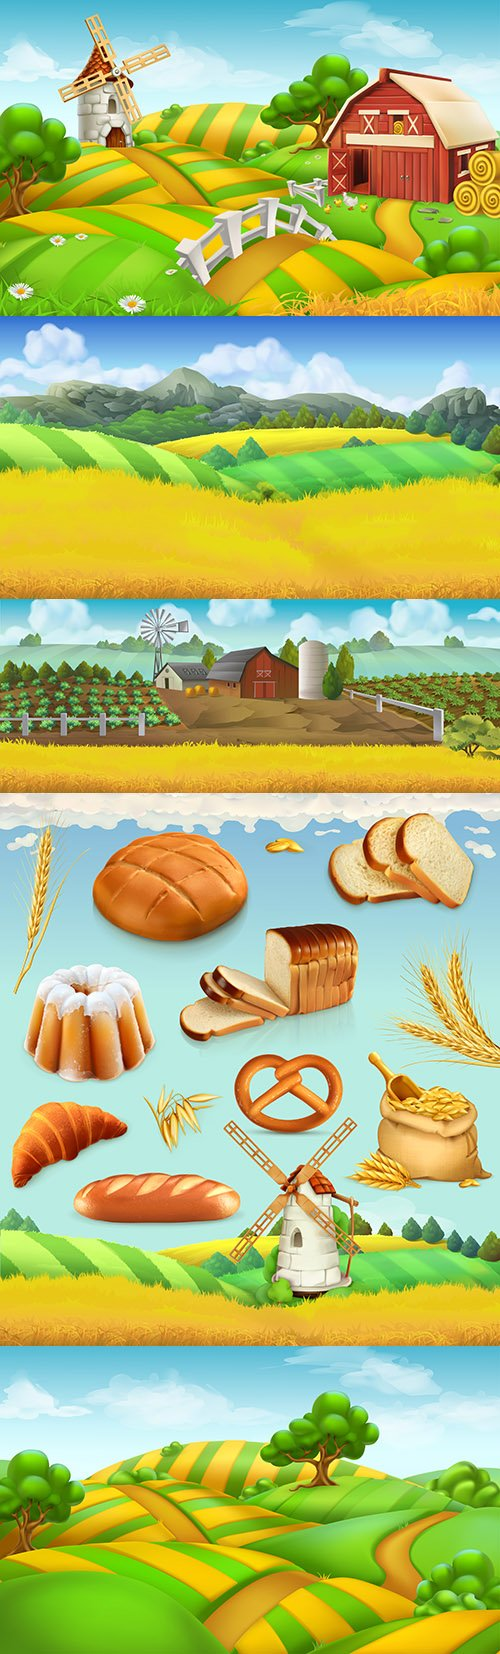 Farm field landscape and wheat with bread 3d illustrations